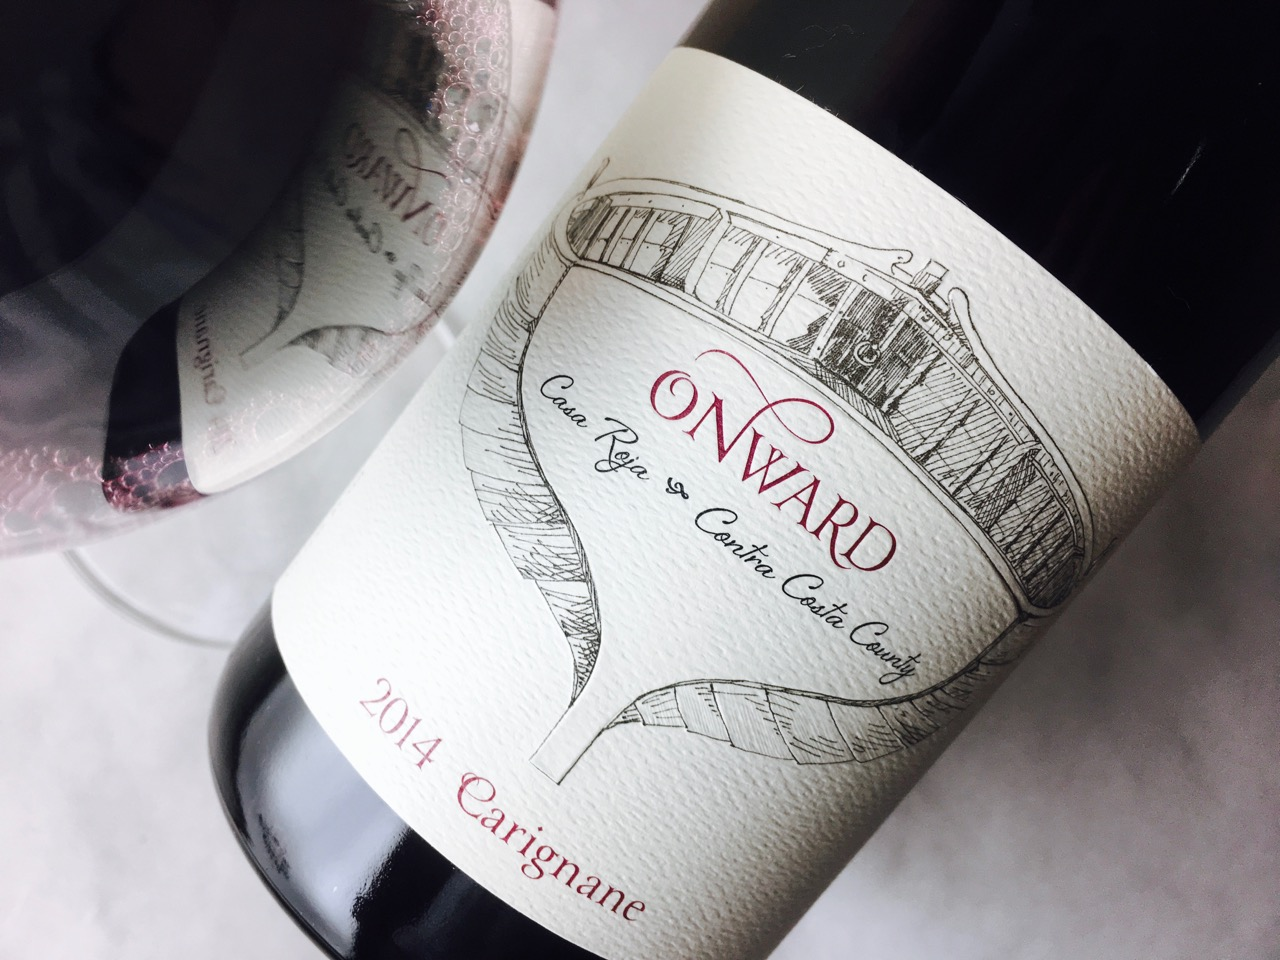 2014 Onward Carignane Casa Roja Vineyard Contra Costa County